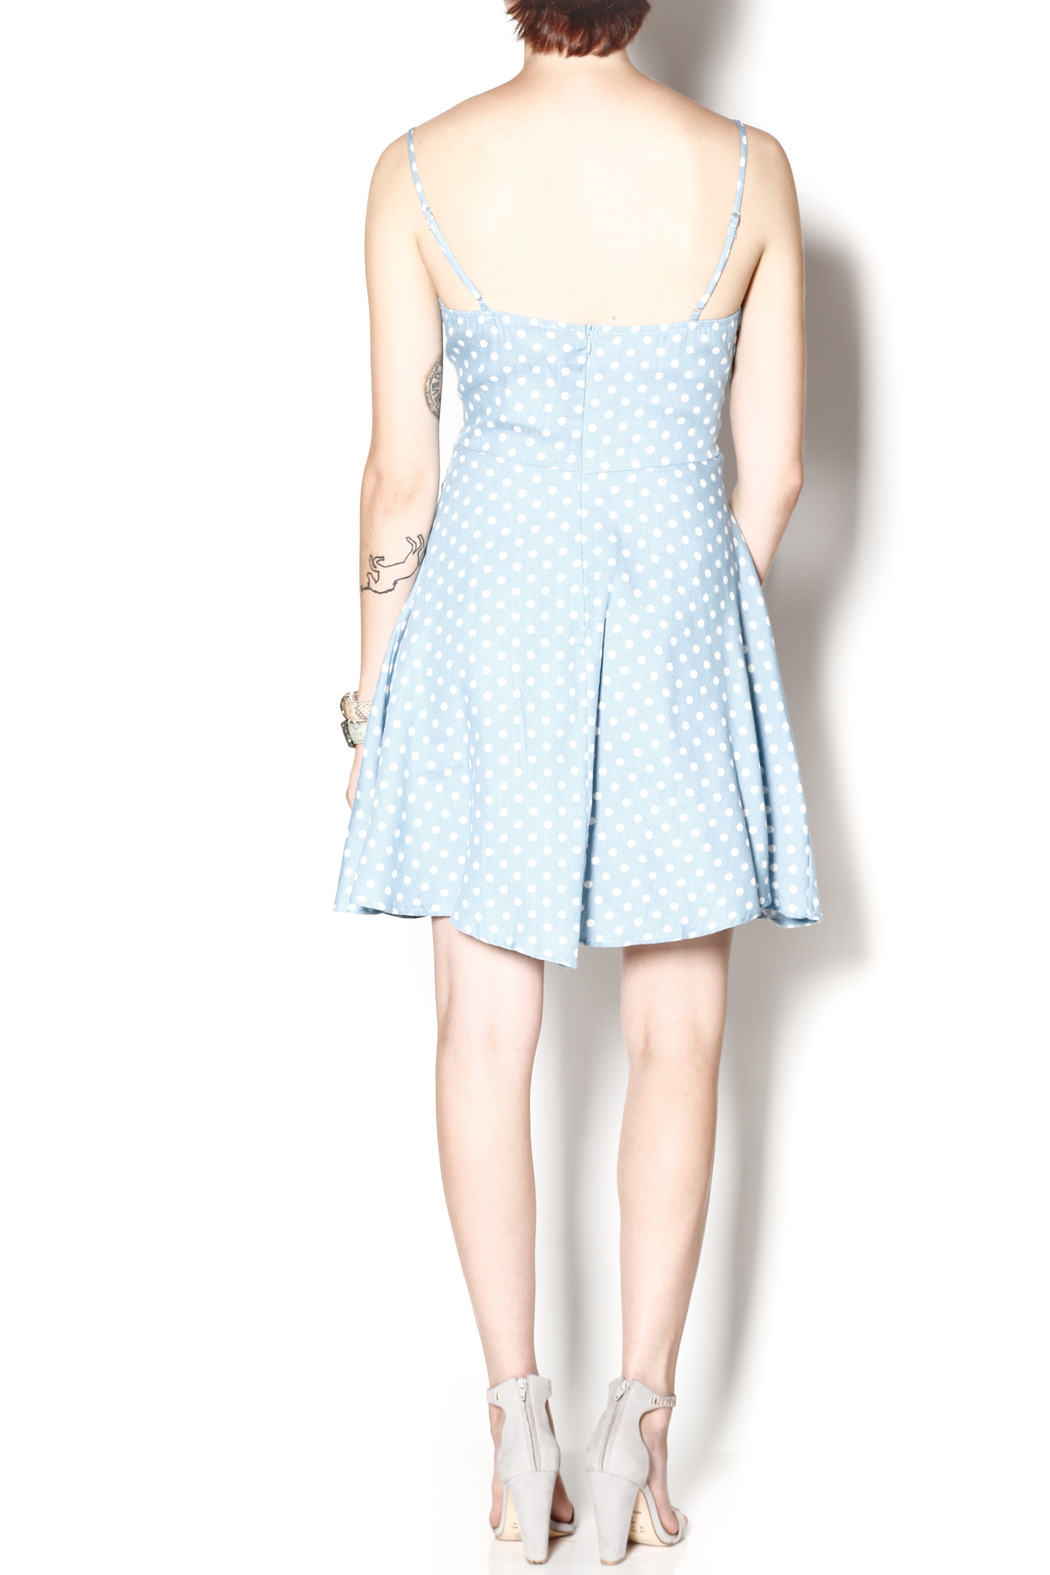 Everly Dotty Chambray Dress - Side Cropped Image